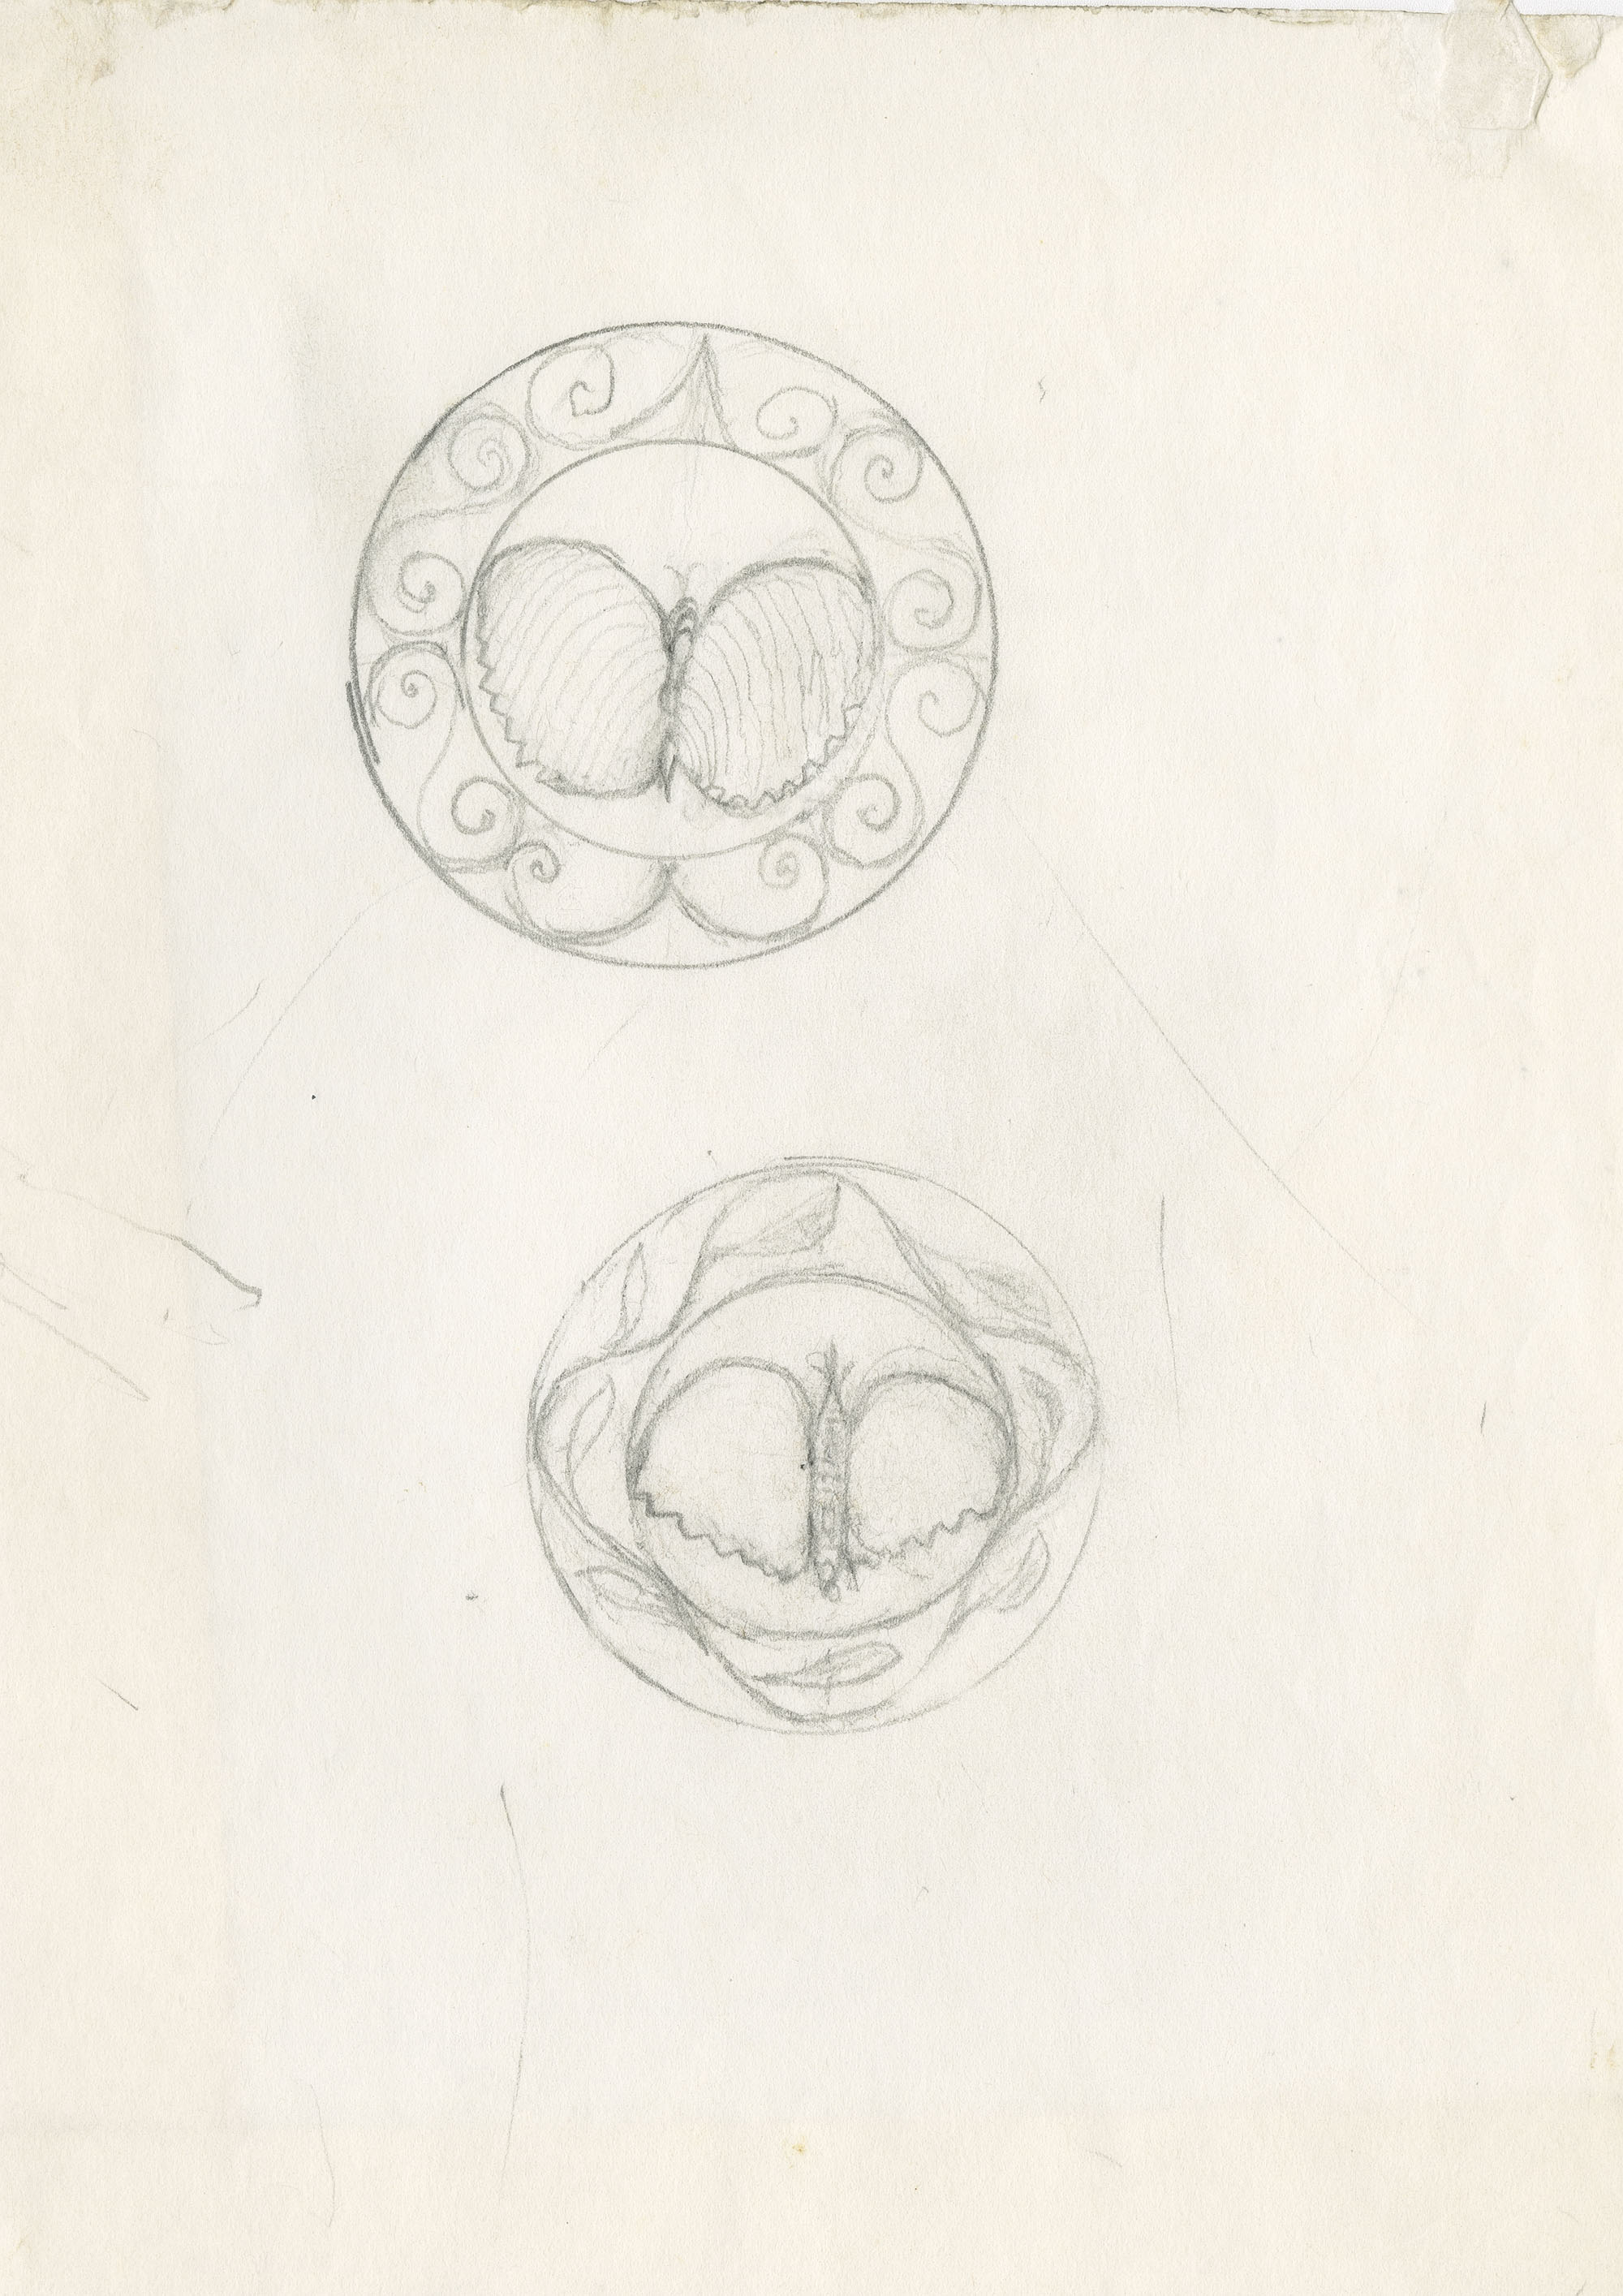 Sketches with butterfly centers, one surrounded by scrolls, the other with leaves